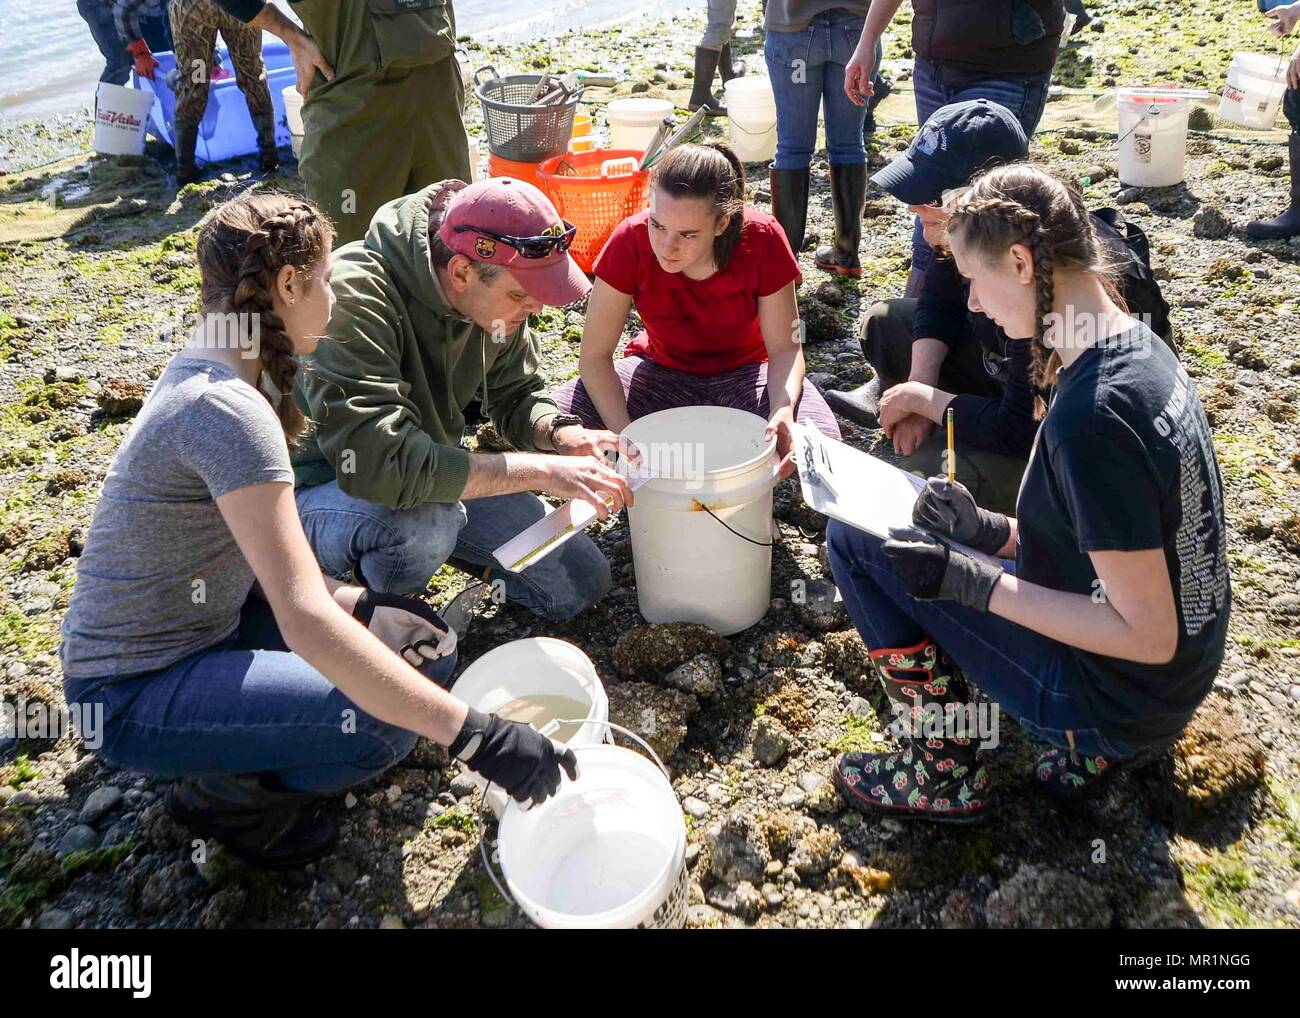 170428-N-VH385-027 INDIAN ISLAND, Wash. (April 28, 2017) – Jake Gregg, a fishery biologist with the United States Geological Survey (USGS), measures a fish with students from Blue Heron Middle School during a community outreach beach seining at Naval Magazine Indian Island. This is the third year the USGS has teamed up with Blue Heron Middle School and Naval Magazine Indian Island to conduct beach seinings in preparation for the Kilsut Spit waterflow to be opened between Marrowstone and Indian Island. (U.S. Navy photo by Mass Communication Specialist 3rd Class Wyatt L. Anthony) - Stock Image